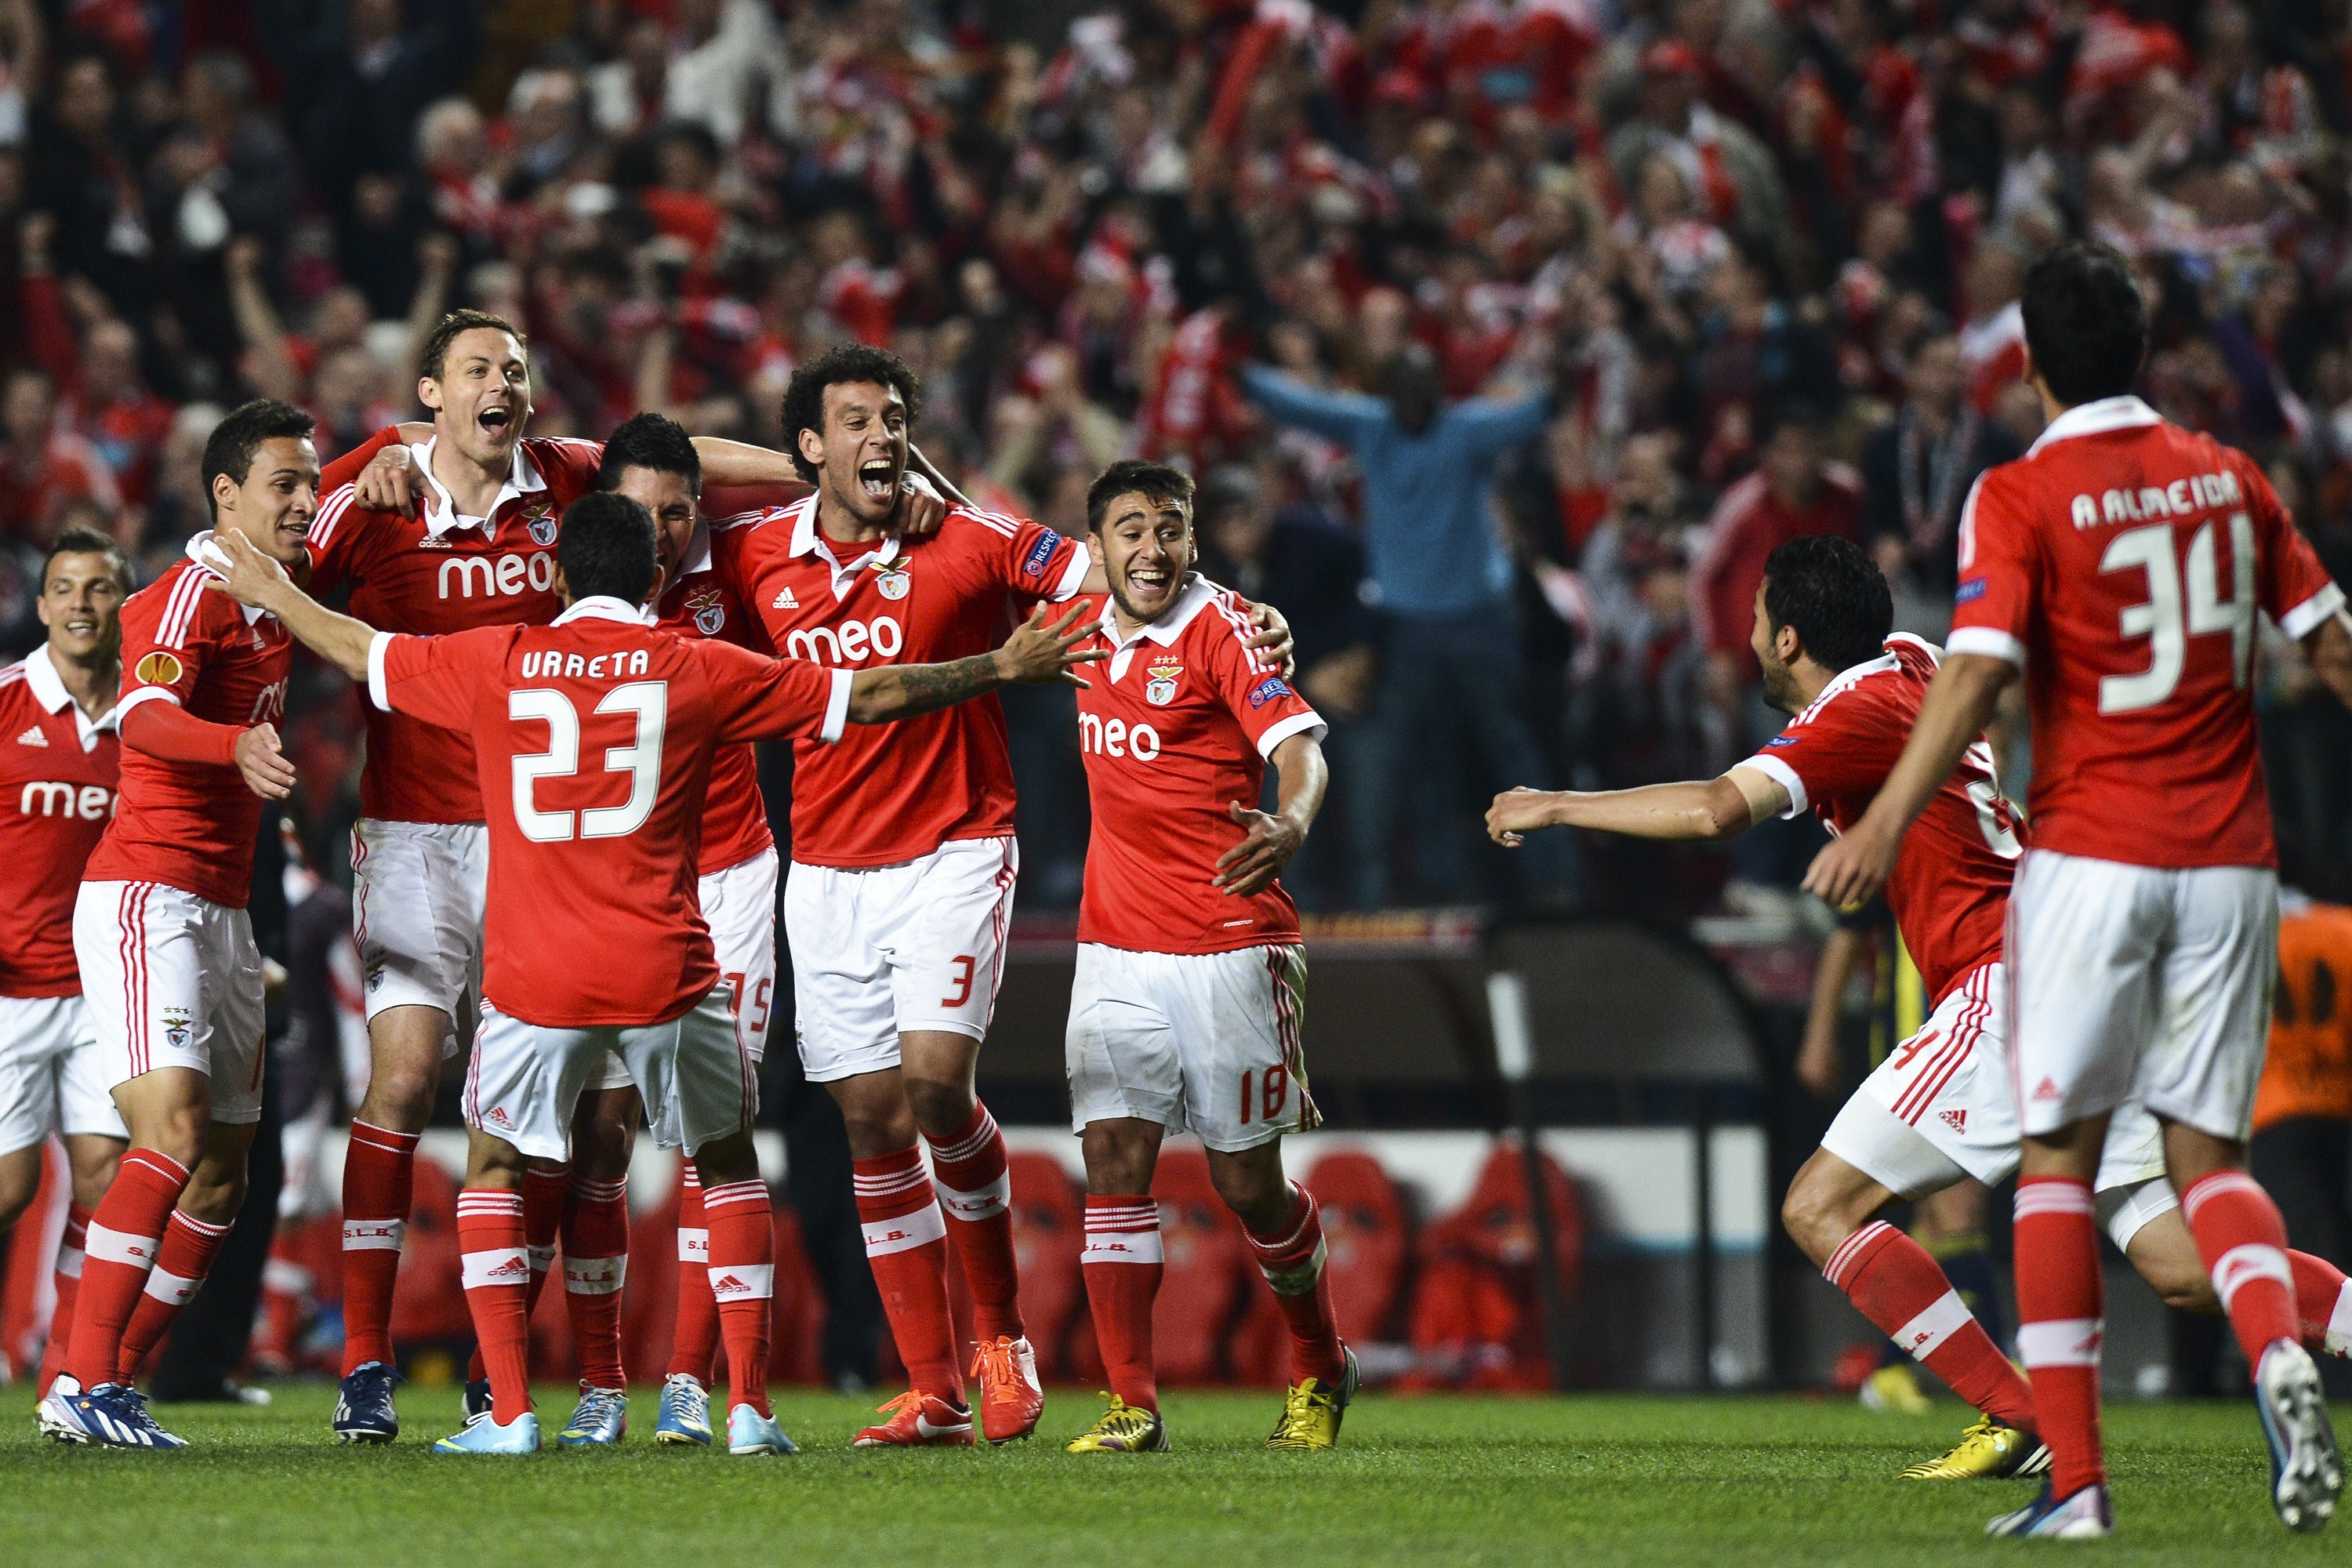 Benfica's football players celebrate their victory over Fenerbahce at the end of the UEFA Europa League semi-final second leg football match SL Benfica vs Fenerbahce SK at the Luz stadium in Lisbon on May 2, 2013. Benfica won 3-1 and is qualified for the final in The Netherlands.    AFP PHOTO/ FRANCISCO LEONG